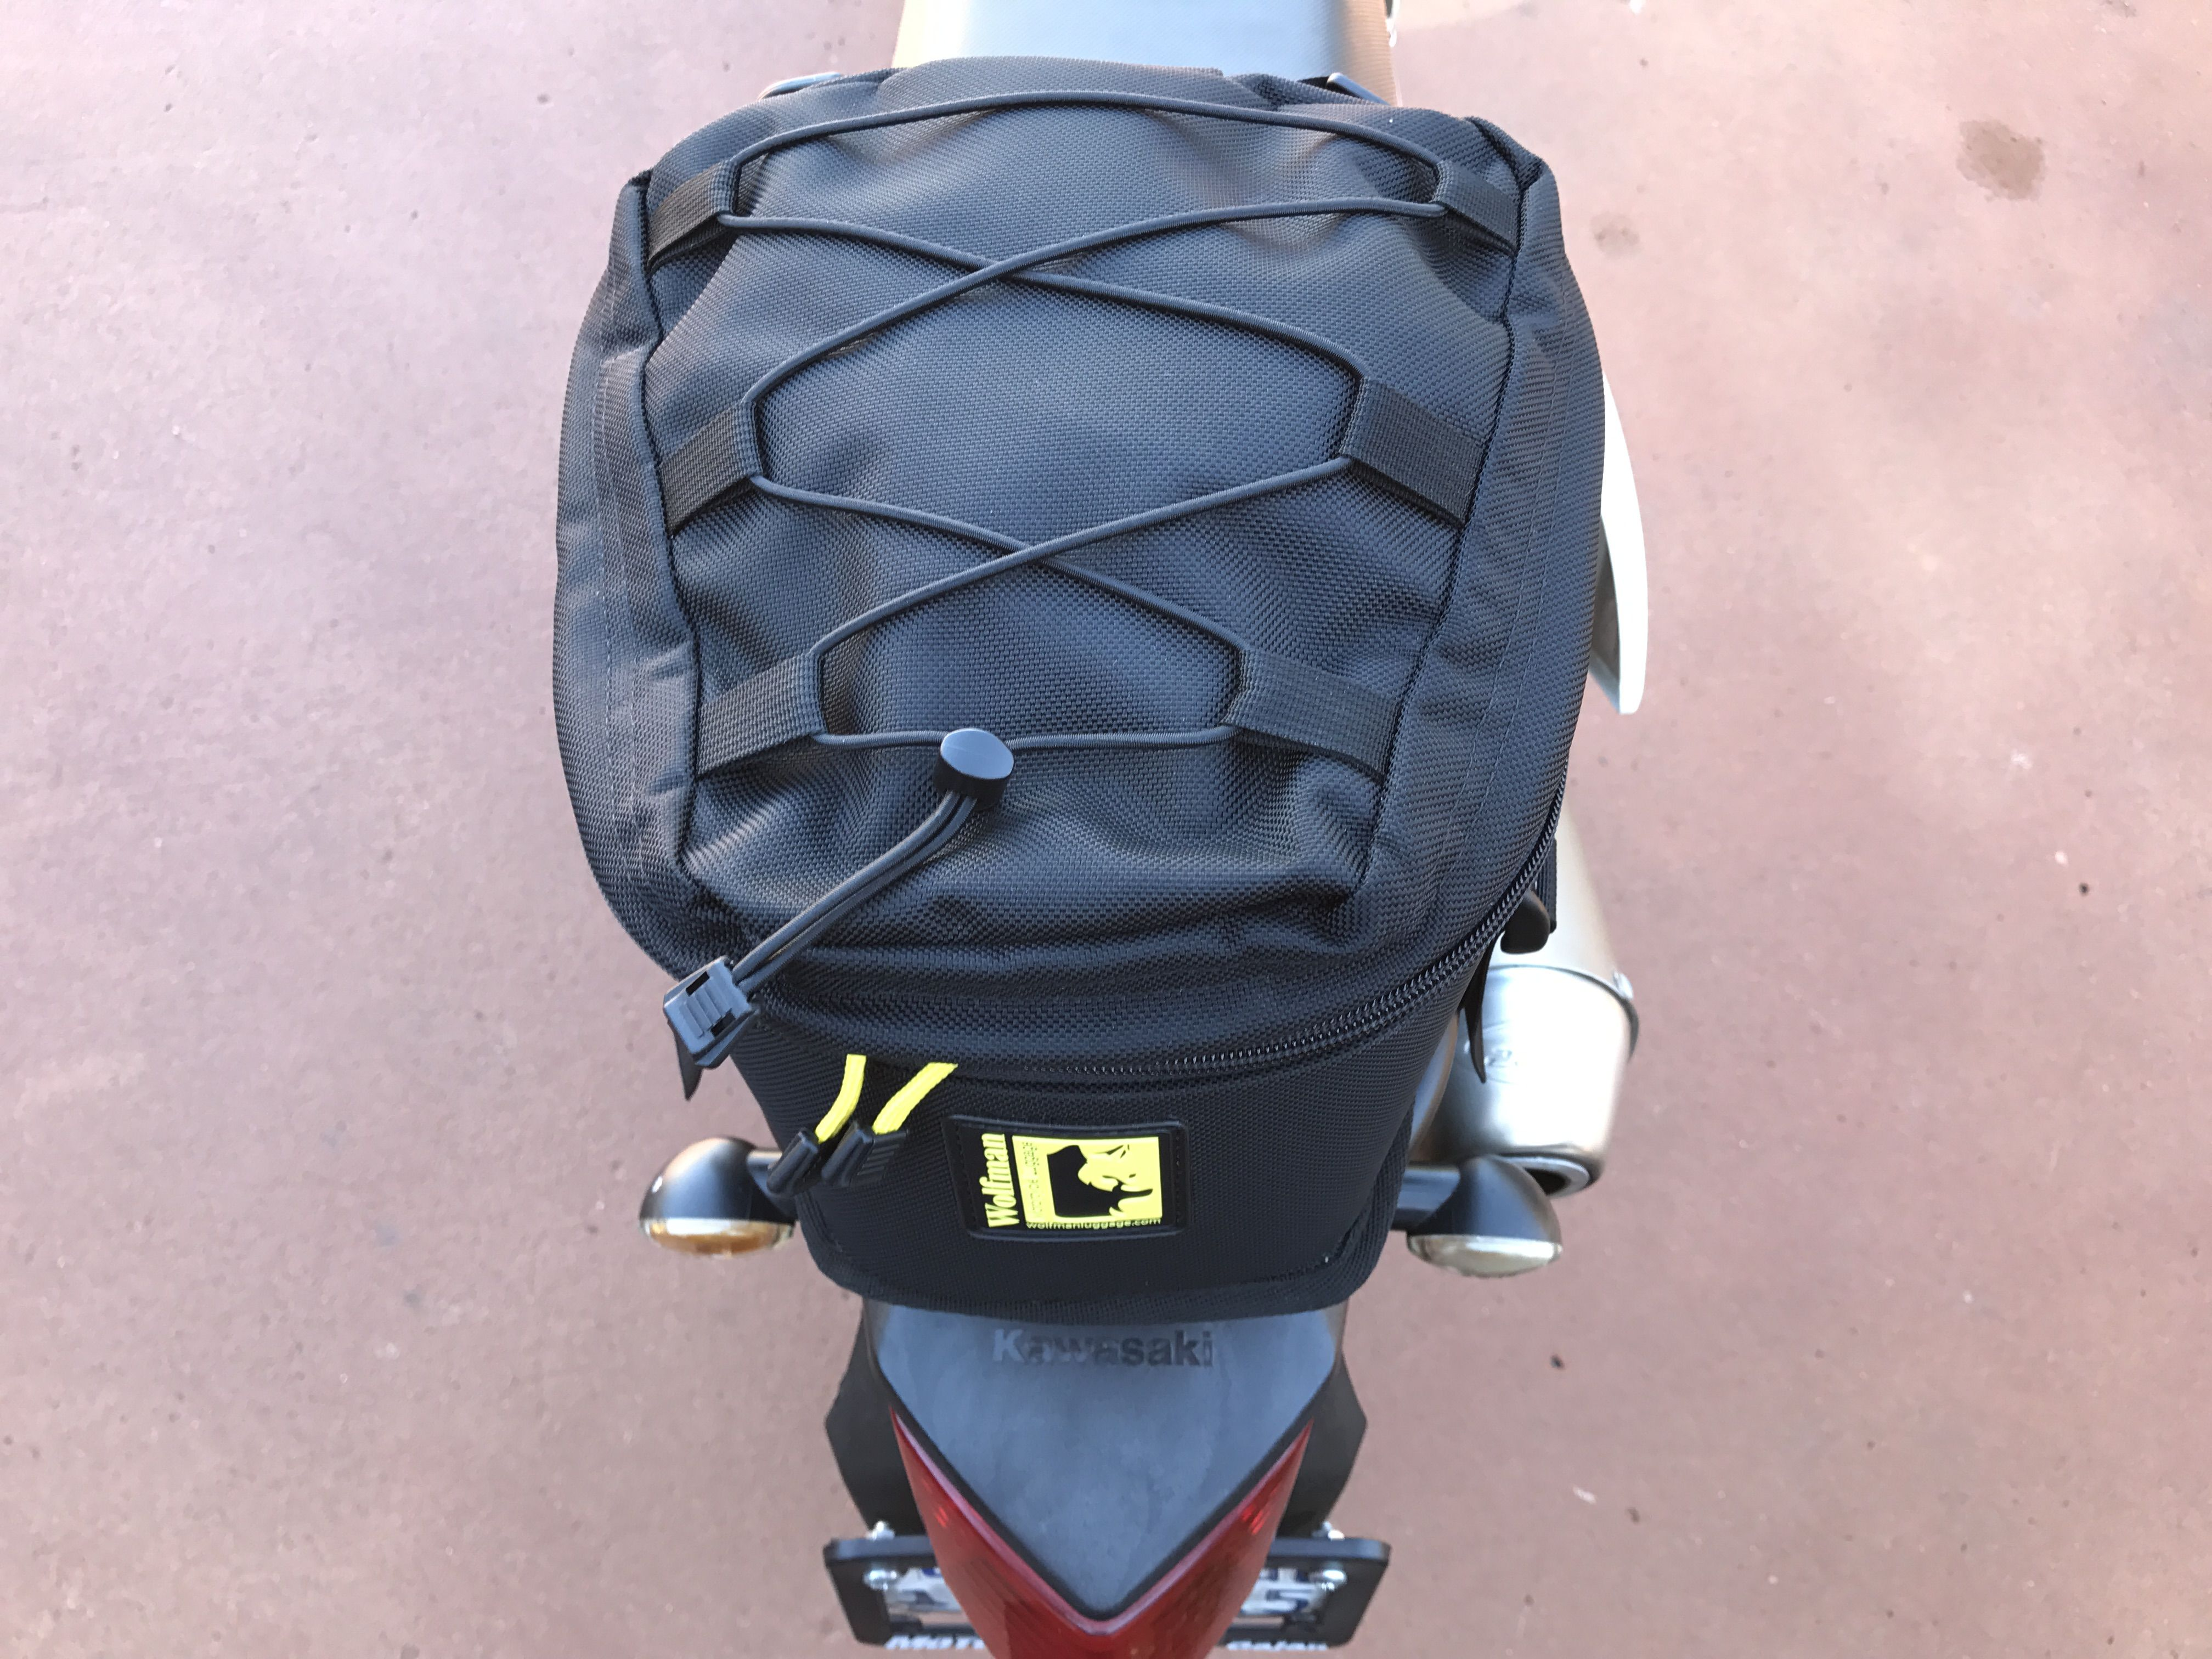 Enduro Series Rear Rack For The Klx250s Shown With Wolfman Peak Tail Bag